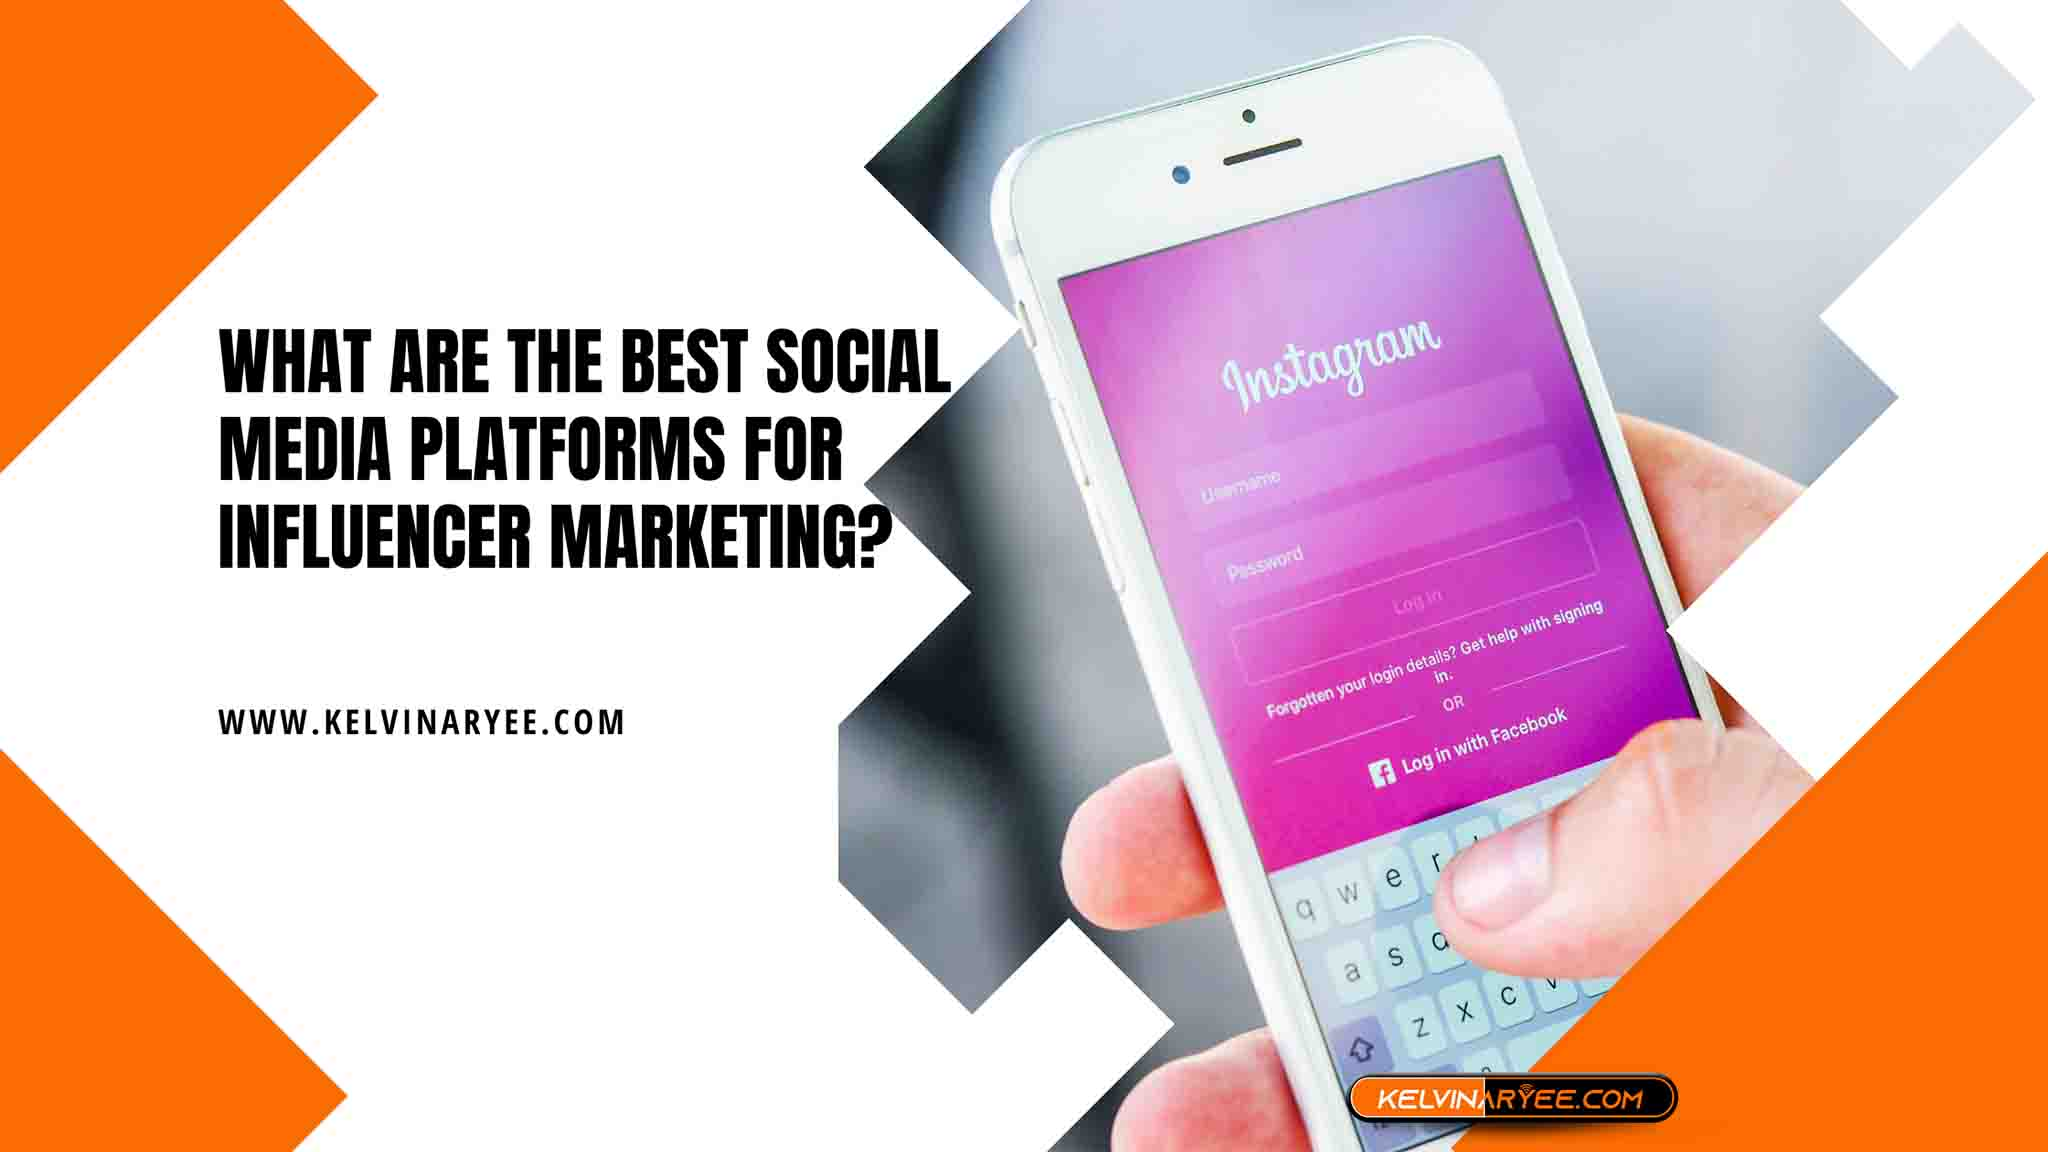 What Are the Best Social Media Platforms for Influencer Marketing?